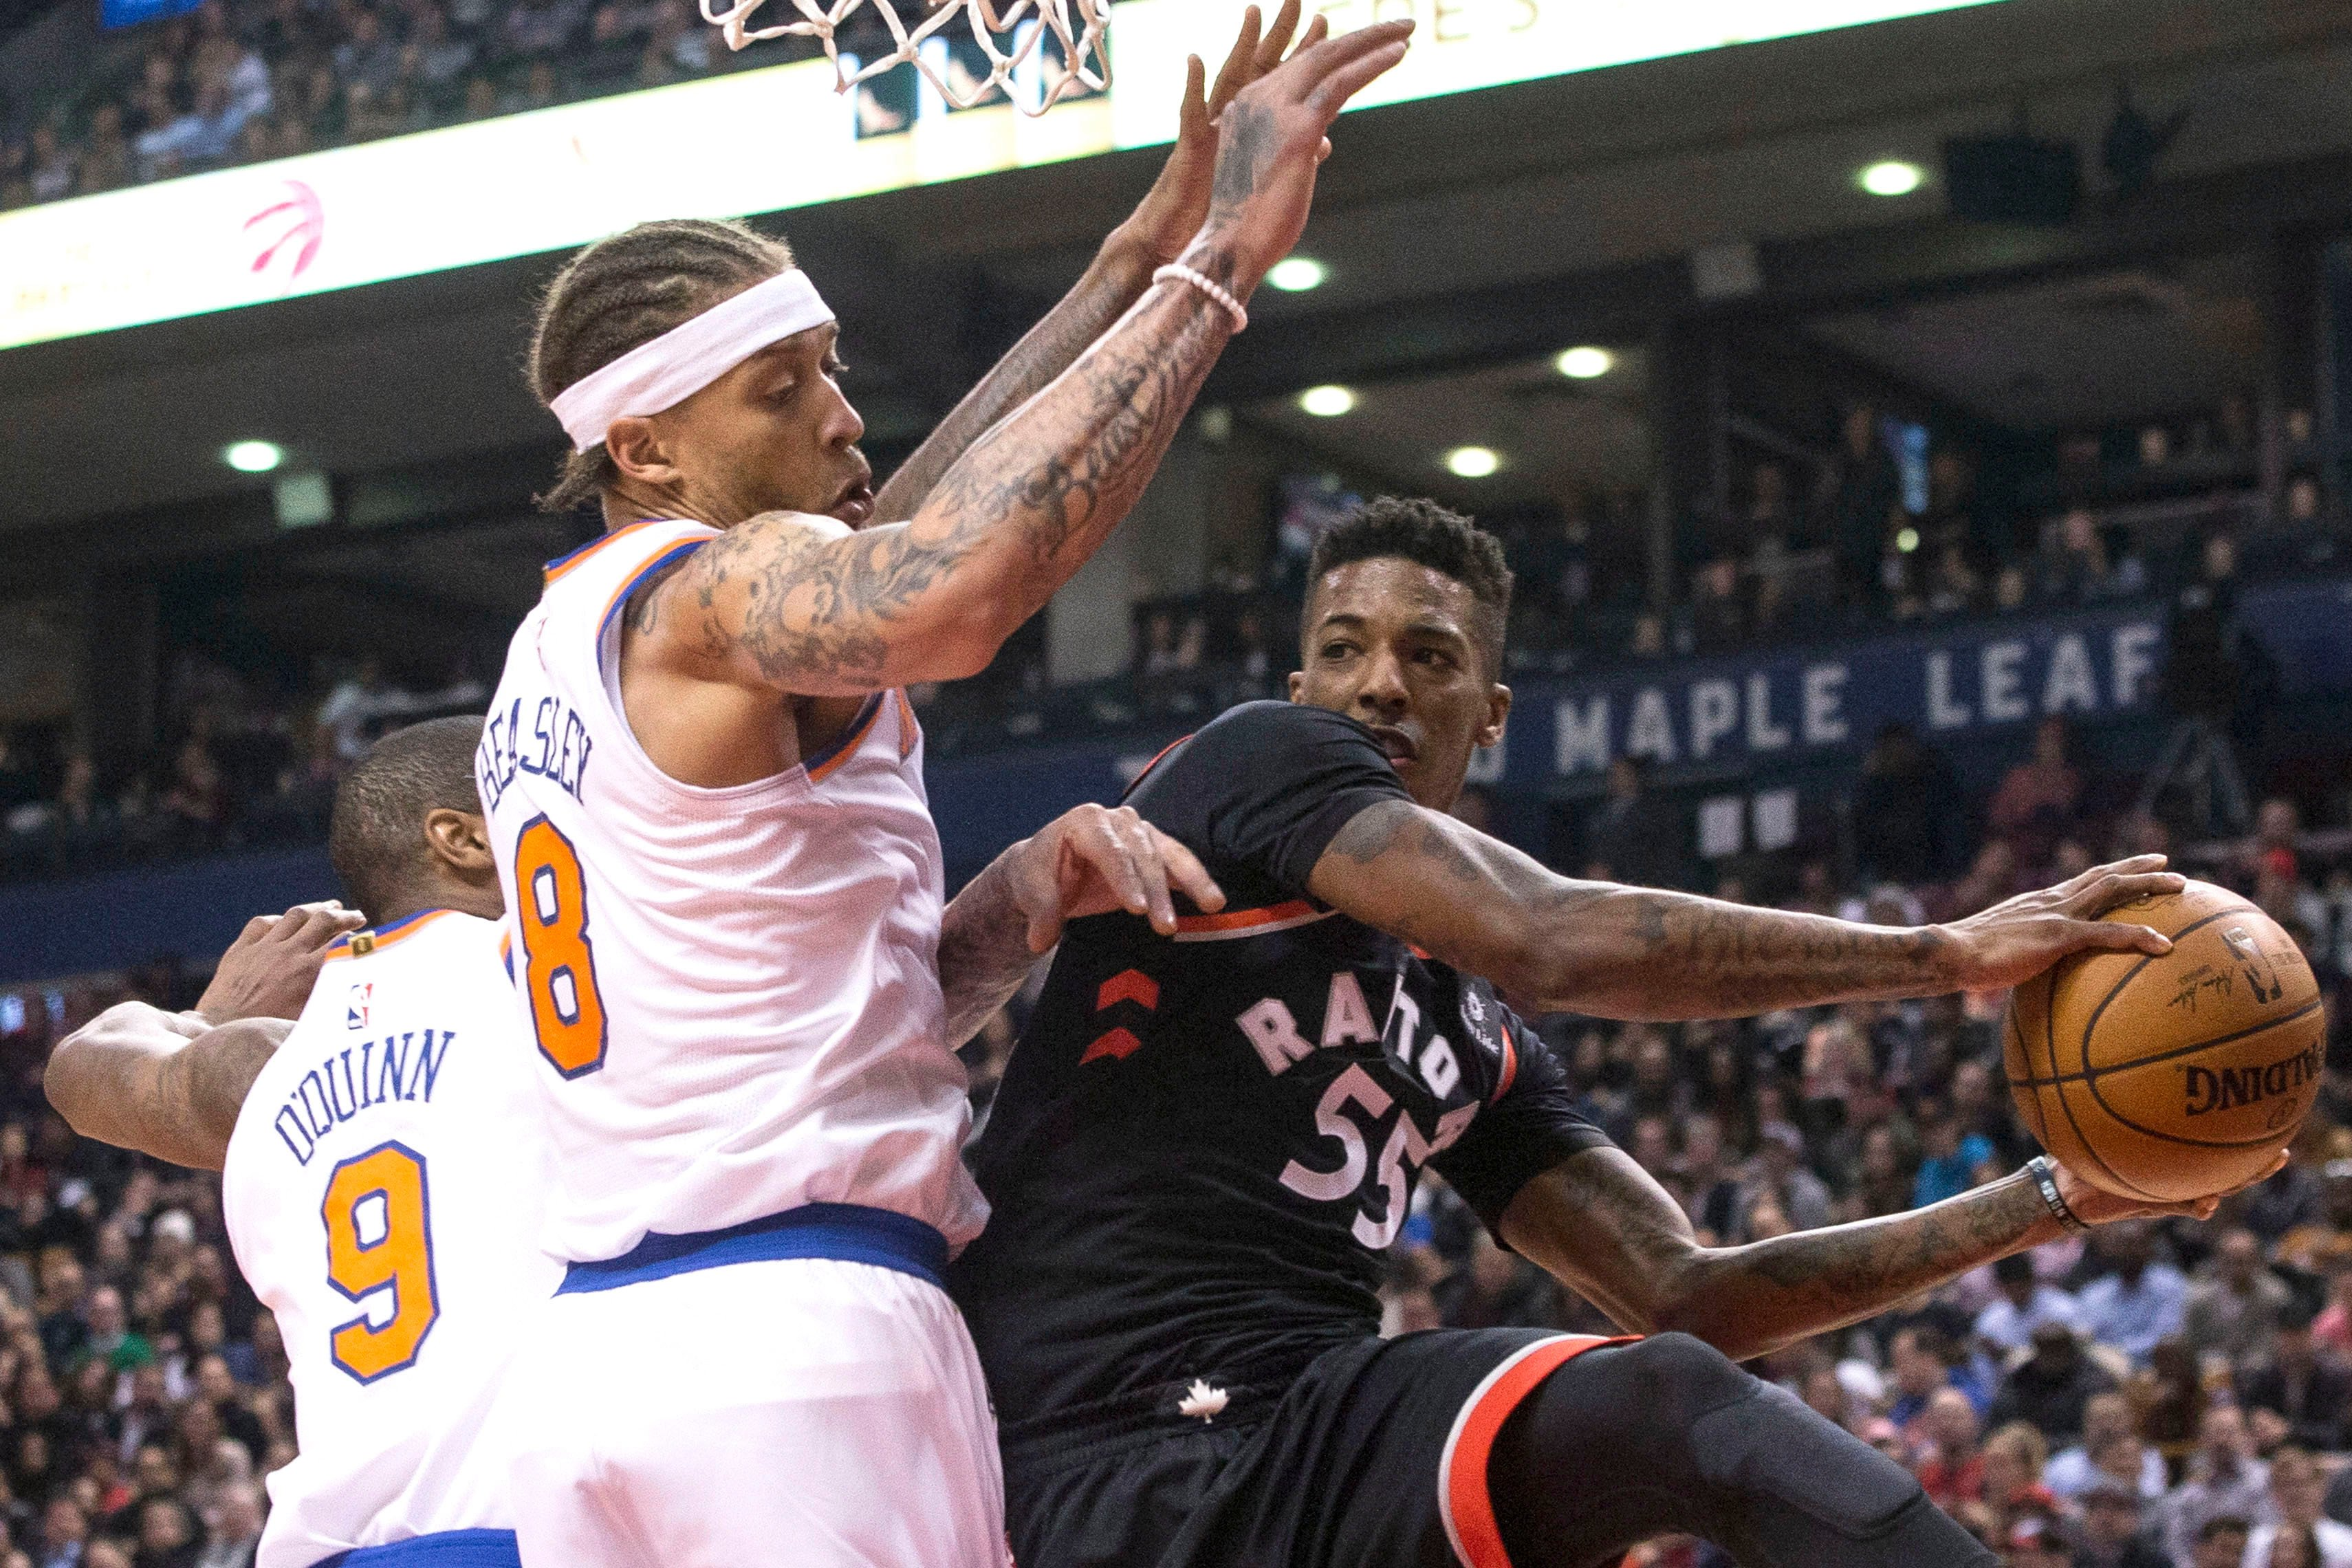 Porzingis-less Knicks pounded by powerhouse Raptors